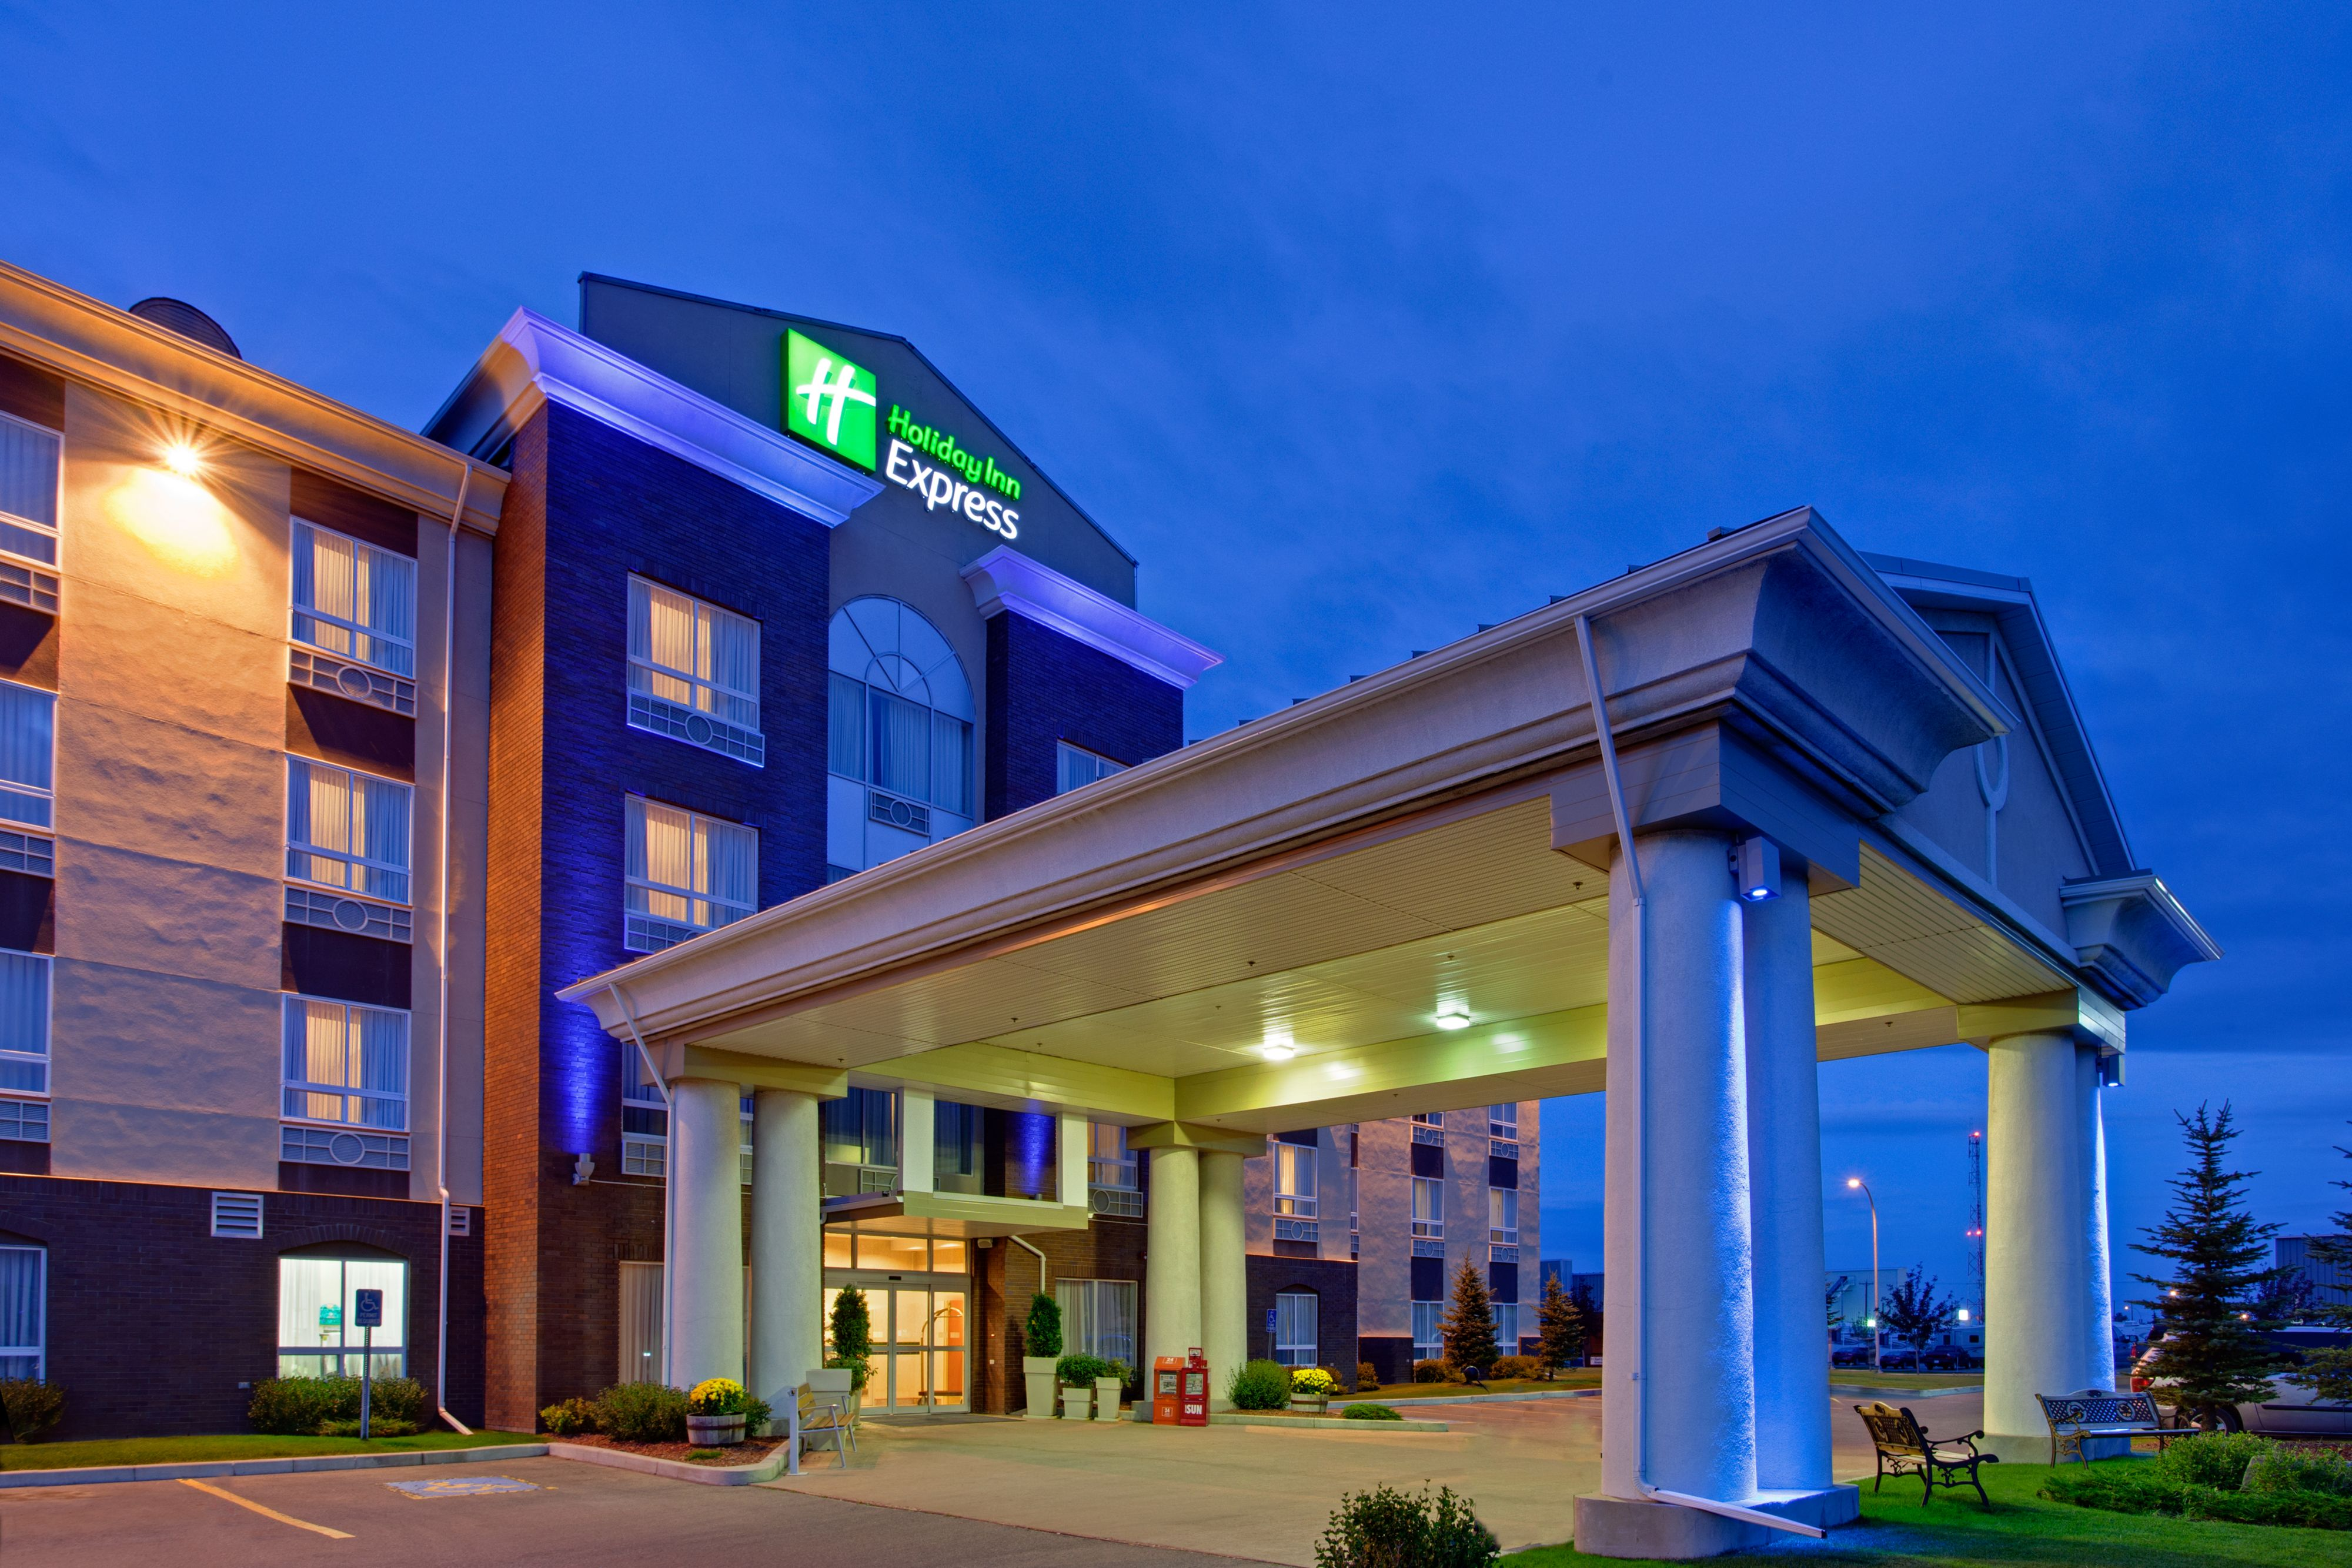 Top Things To See In Monroe Mi Hotels Near Oh Lodging Windsor On Redford Livonia Budget Adrian